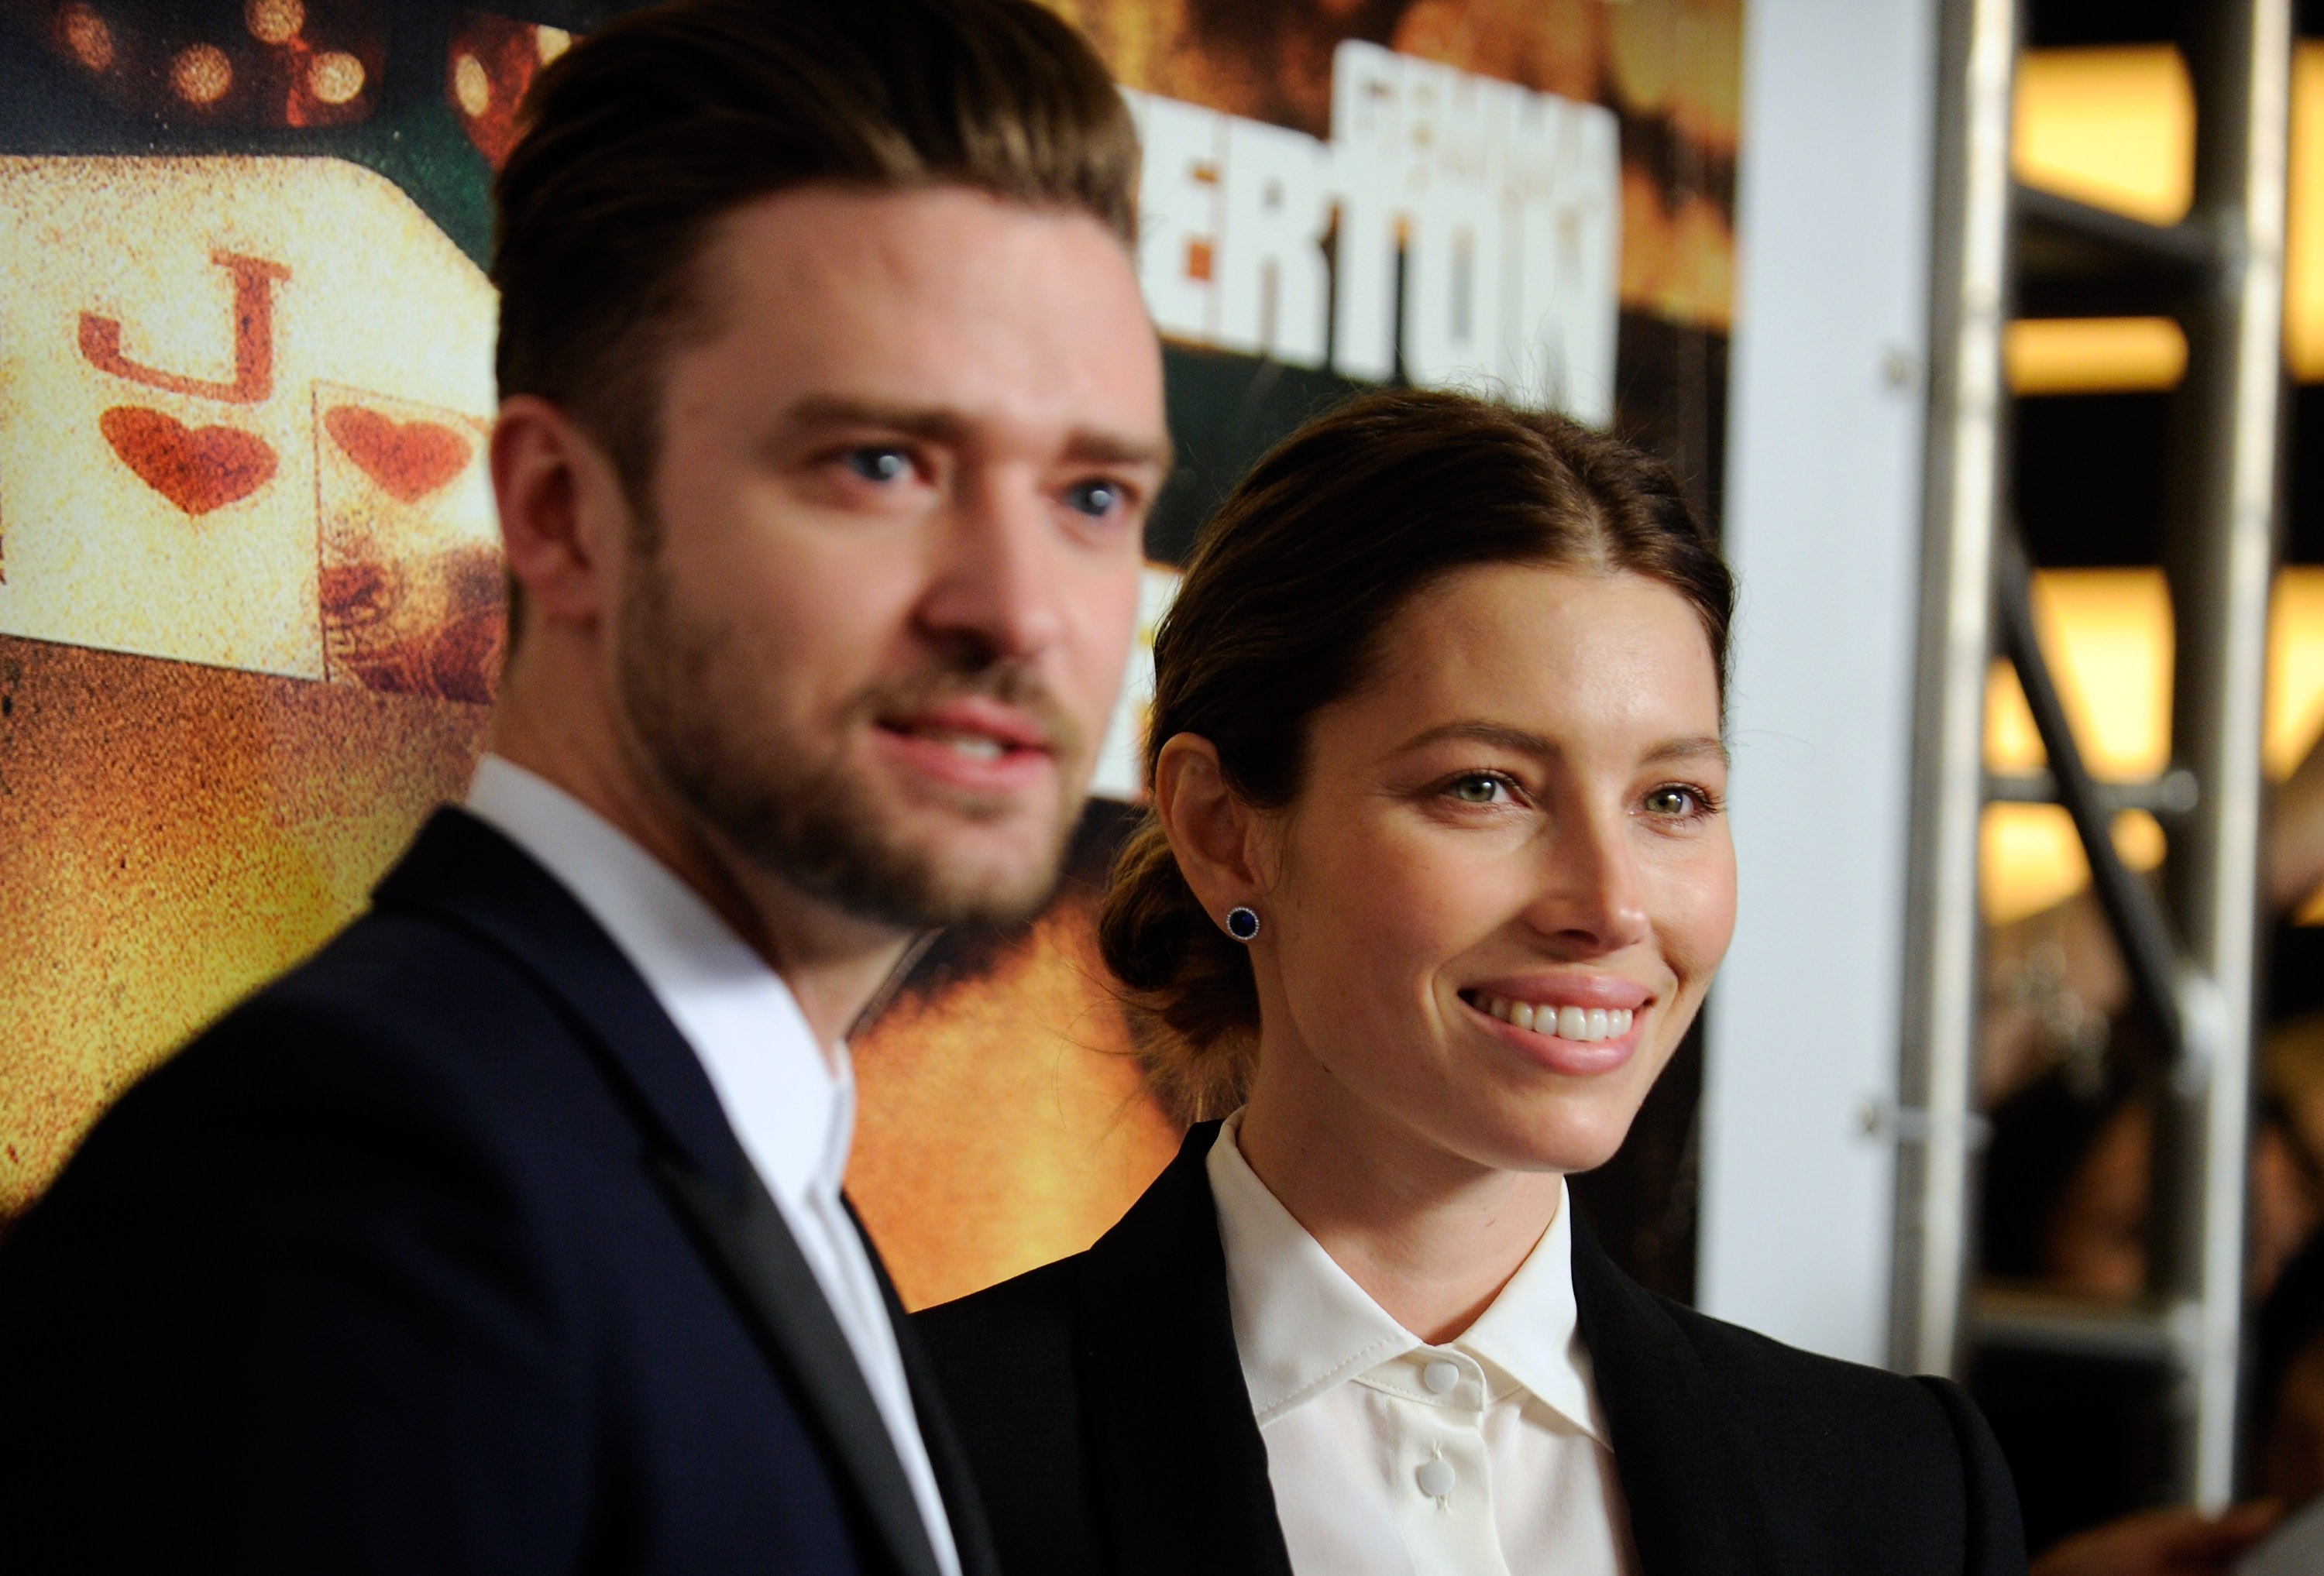 Justin Timberlake and his wife actress Jessica Biel, arrive at the world premiere of Twentieth Century Fox and New Regency's film  Runner Runner  at Planet Hollywood Resort & Casino on Sept. 18, 2013 in Las Vegas.